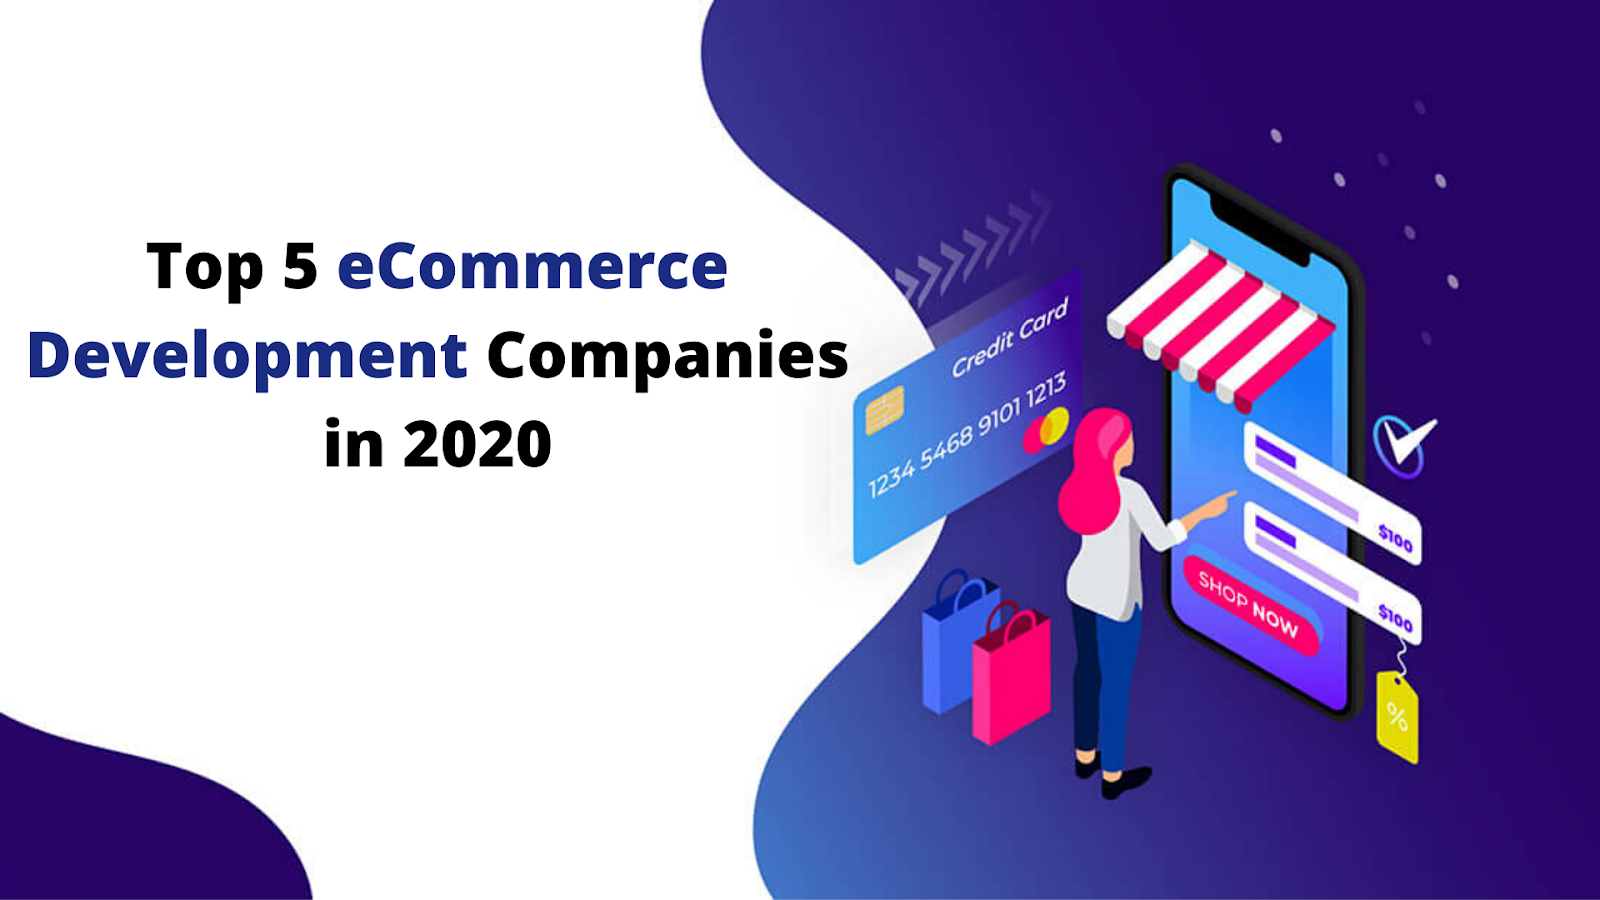 Top 5 eCommerce Development Companies in 2020